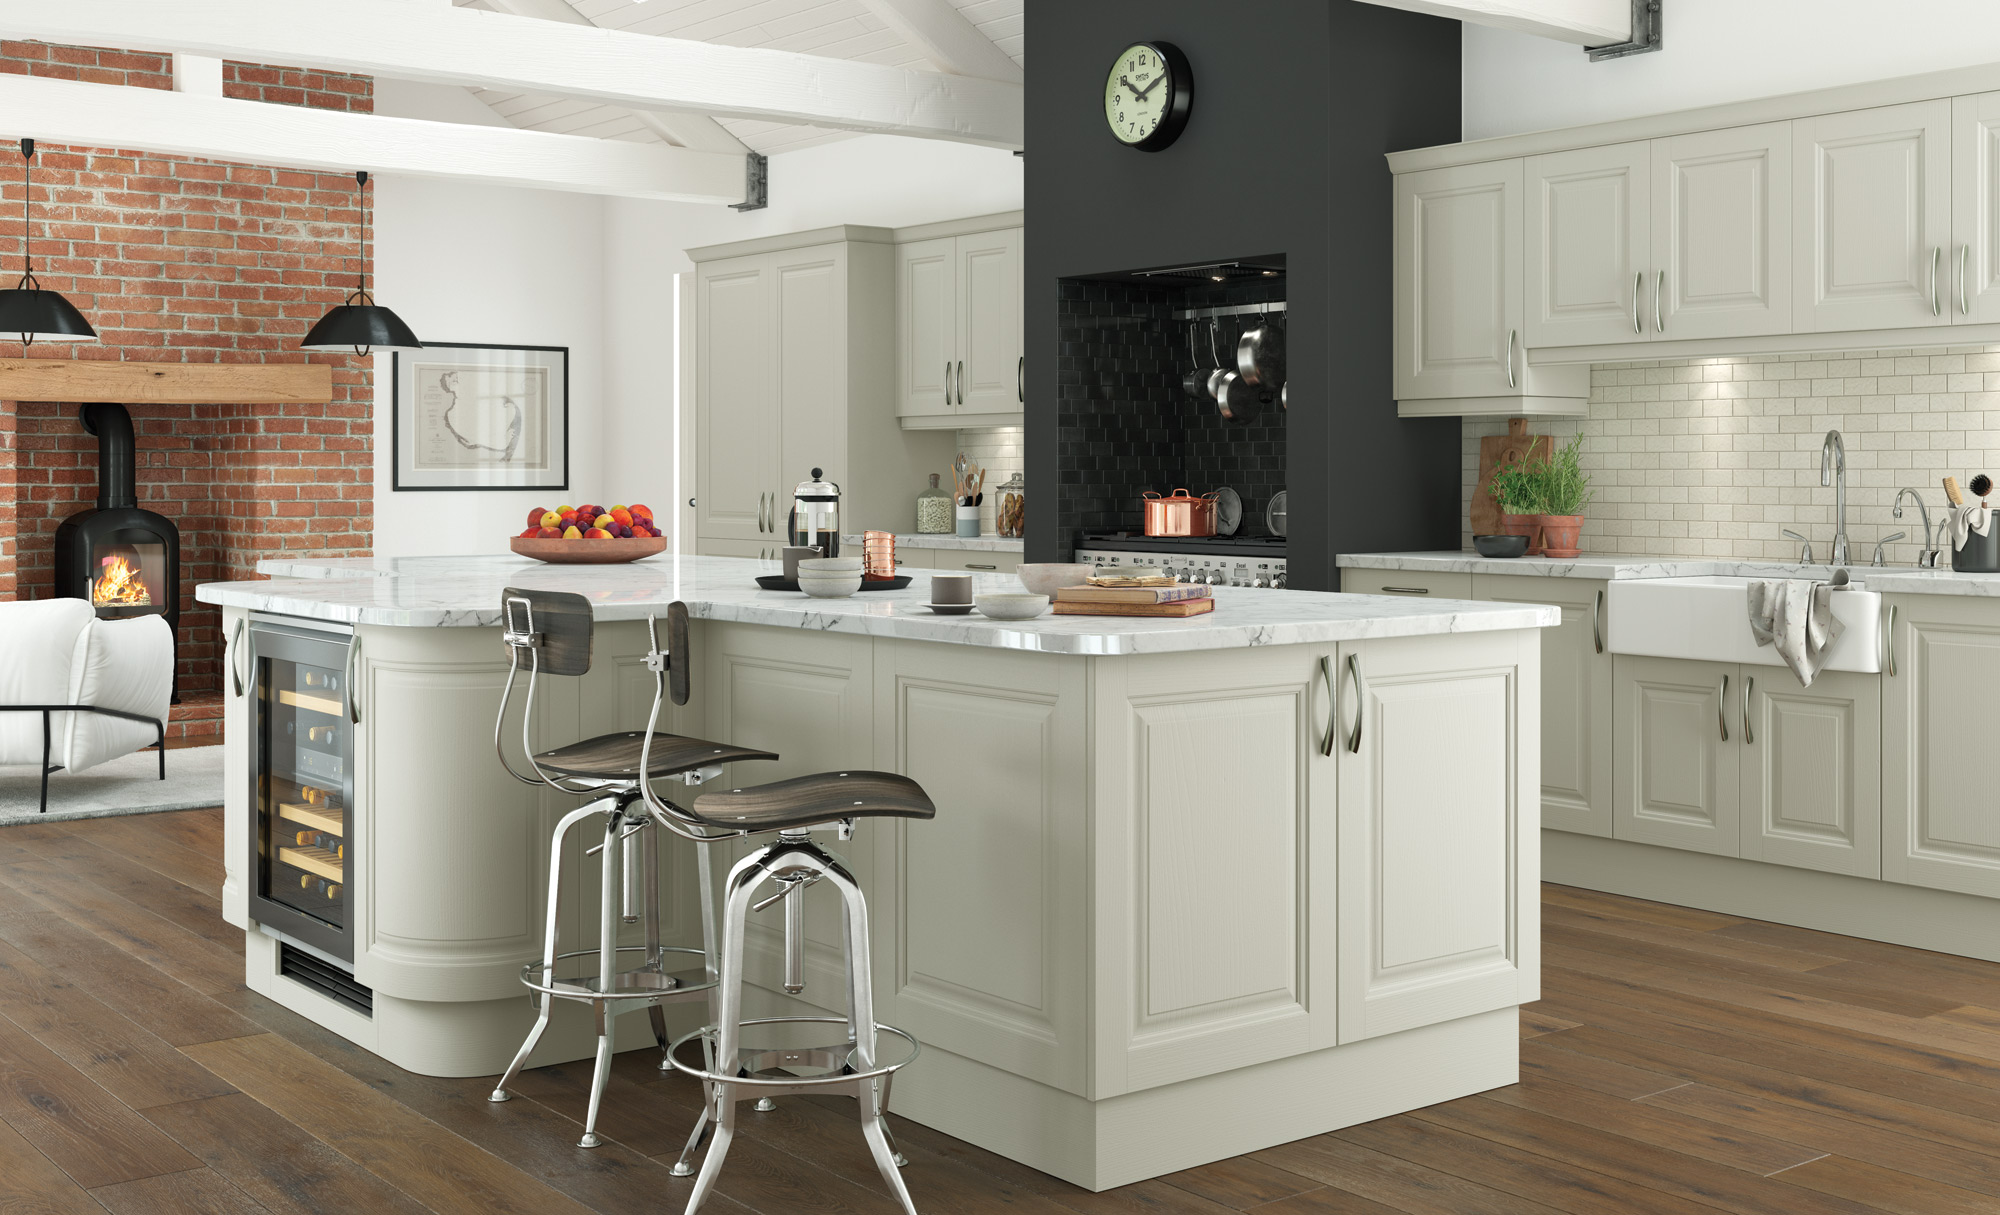 Uncategorized Design Your Kitchen design your kitchen with our planner stori a classic kitchen